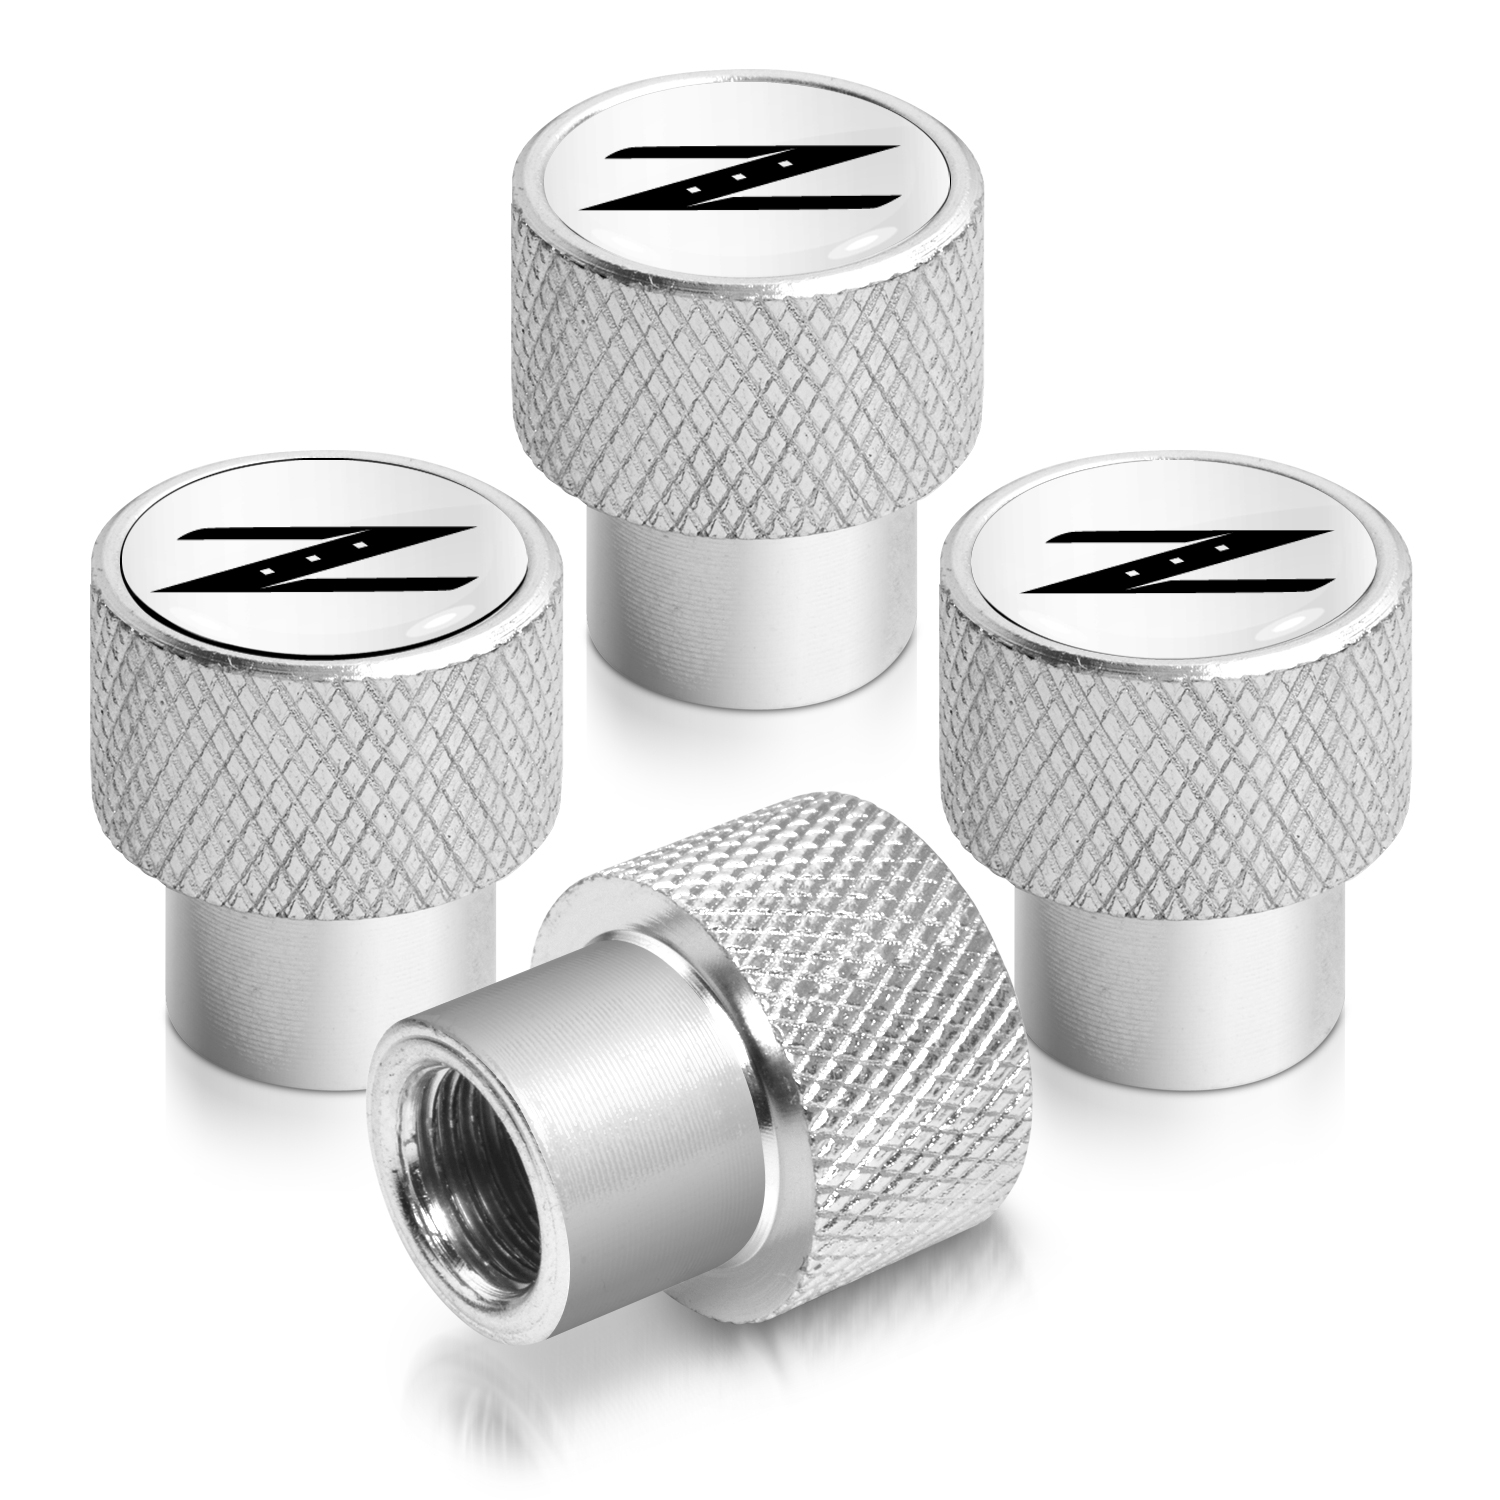 Nissan 350Z Z logo in White on Shining Silver Aluminum Tire Valve Stem Caps